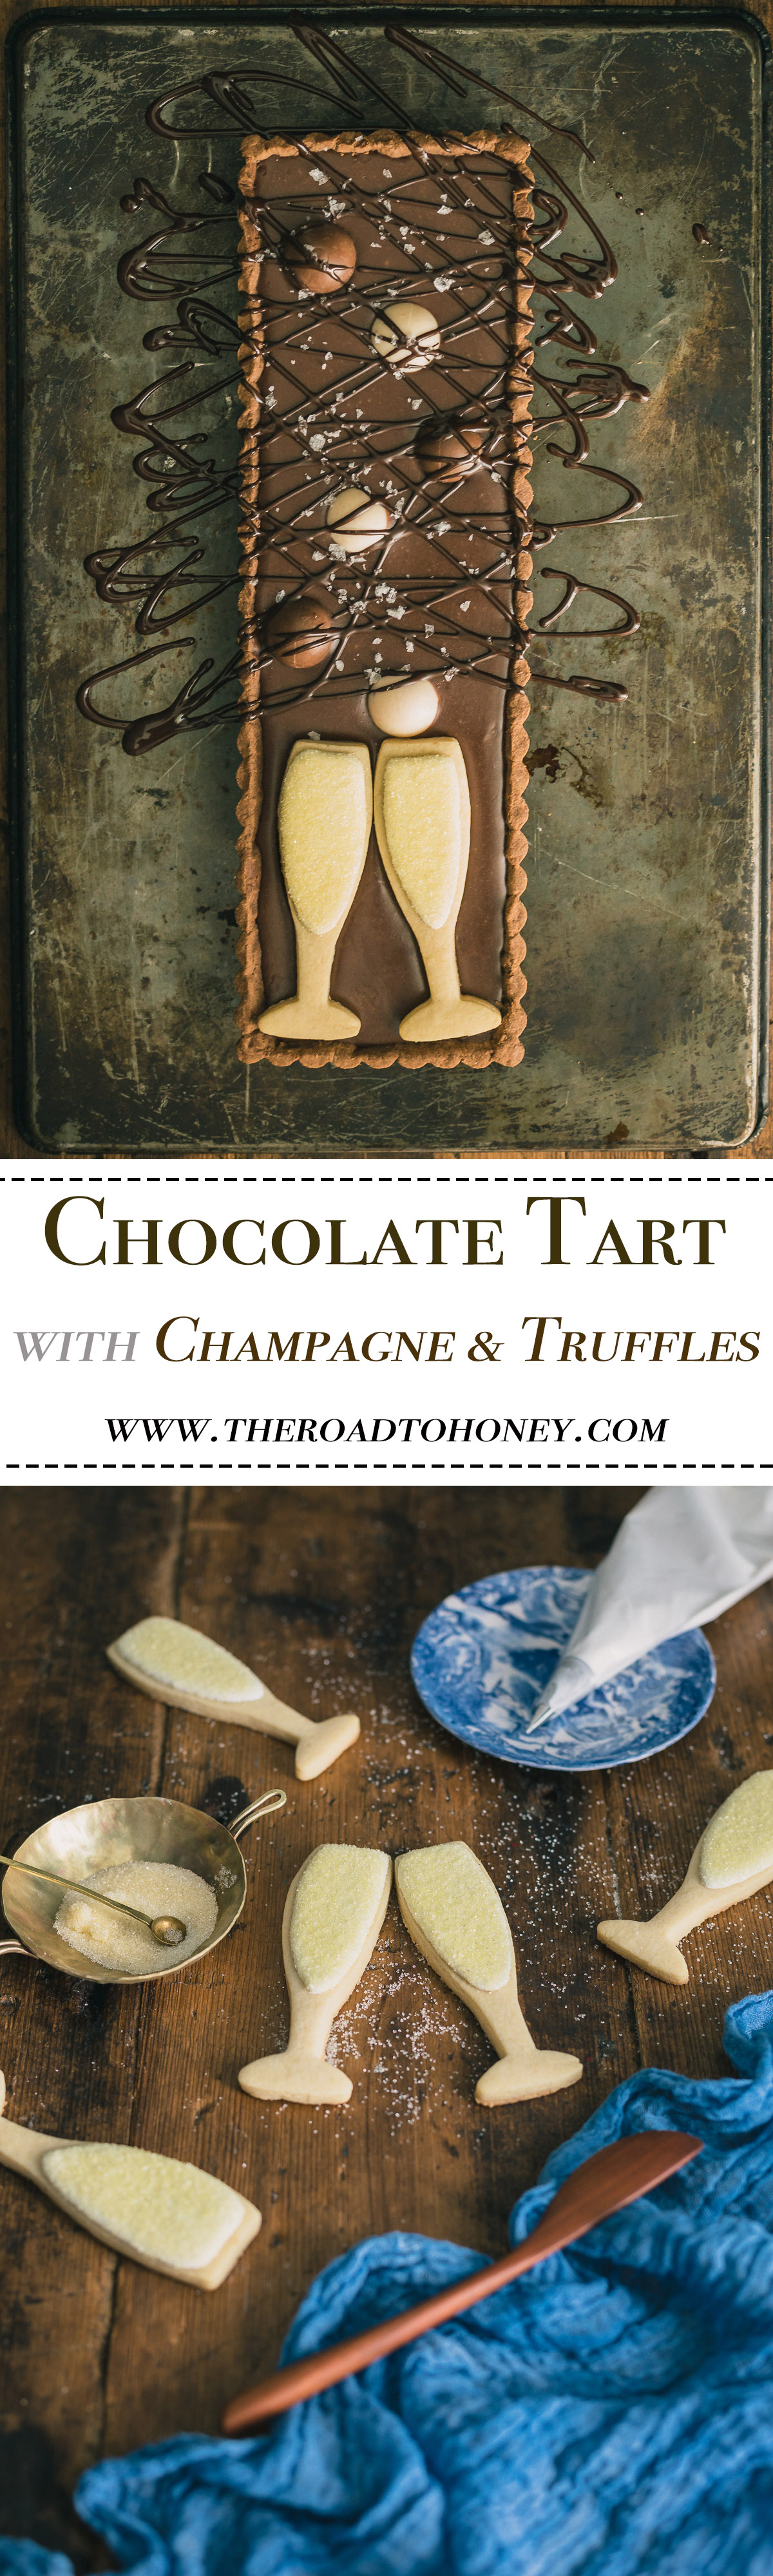 then topped with luxurious chocolate truffles & champagne glass sugar ...